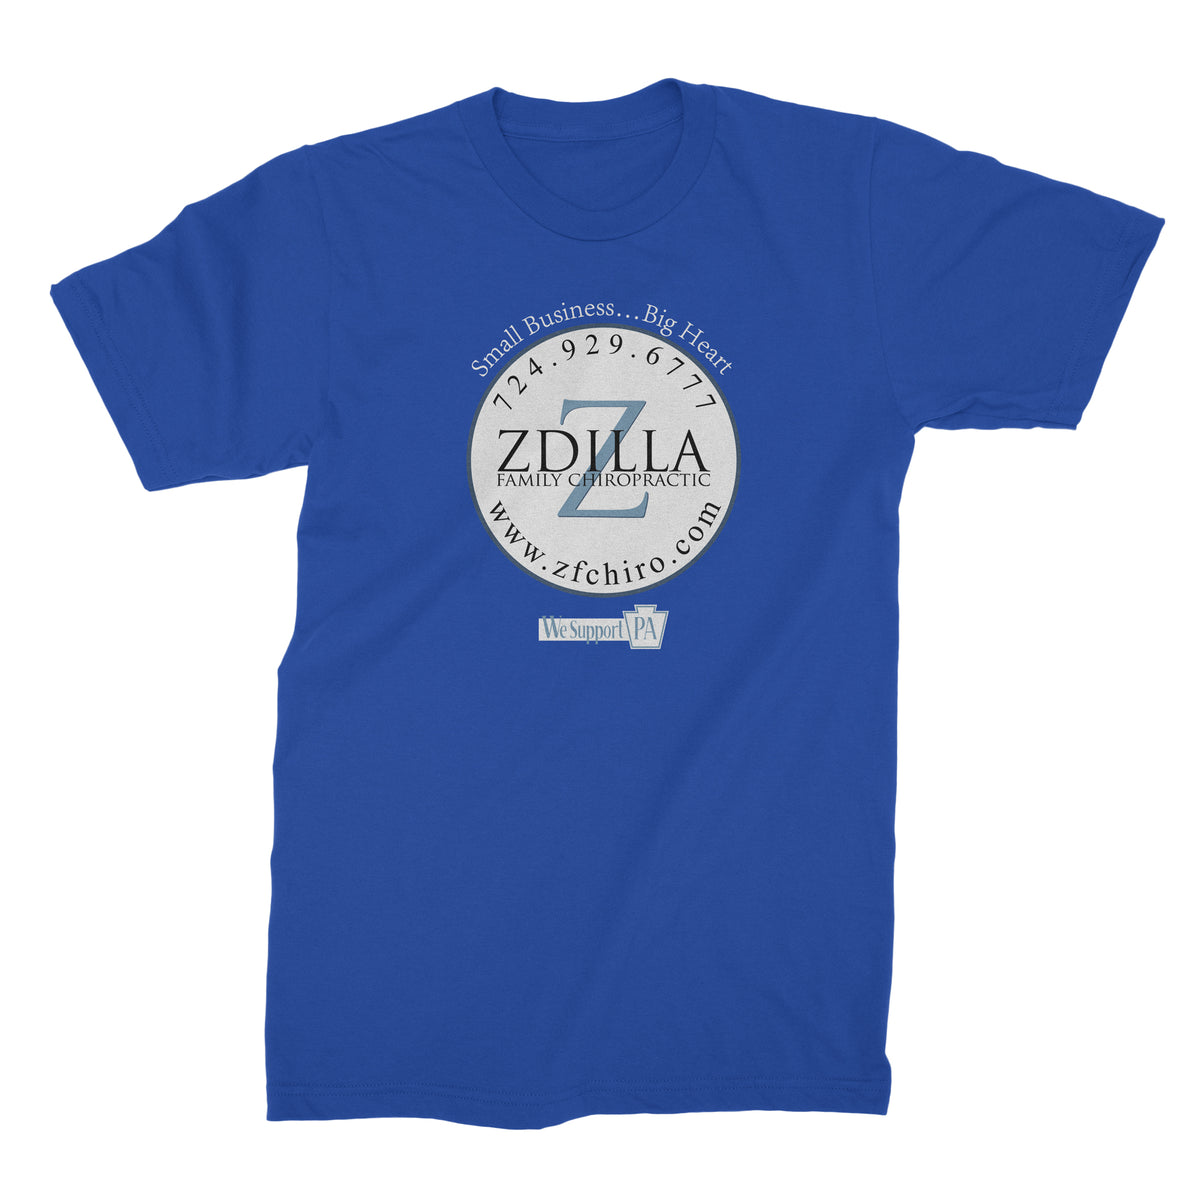 Zdilla Family Chiropractic We Support PA T-Shirt